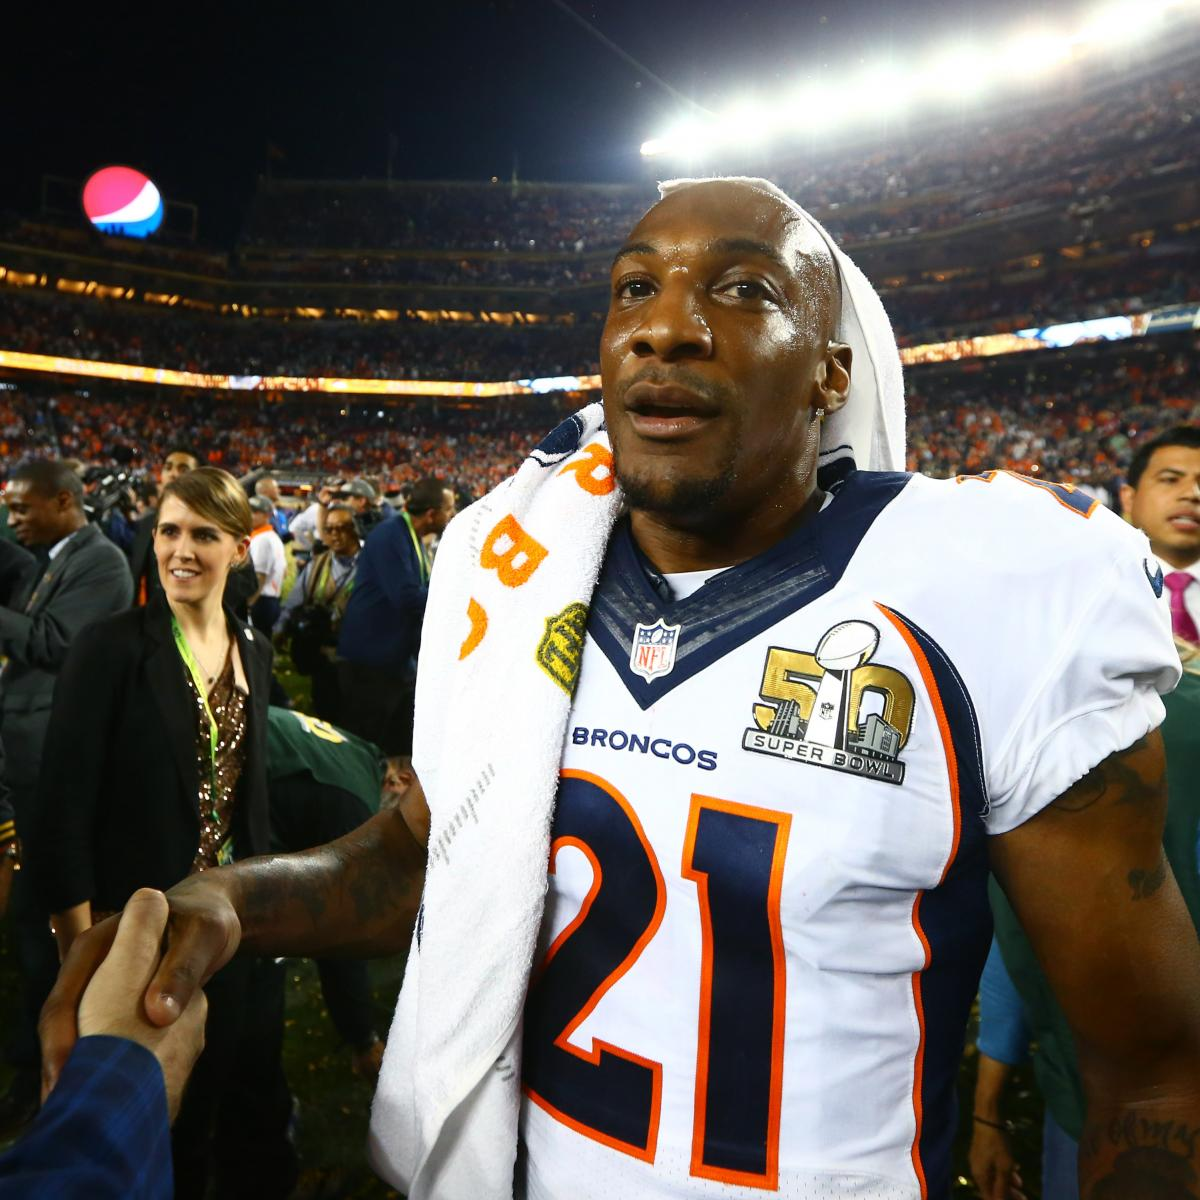 Denver Police Shooting Today: Aqib Talib Released From Hospital After Being Shot In The